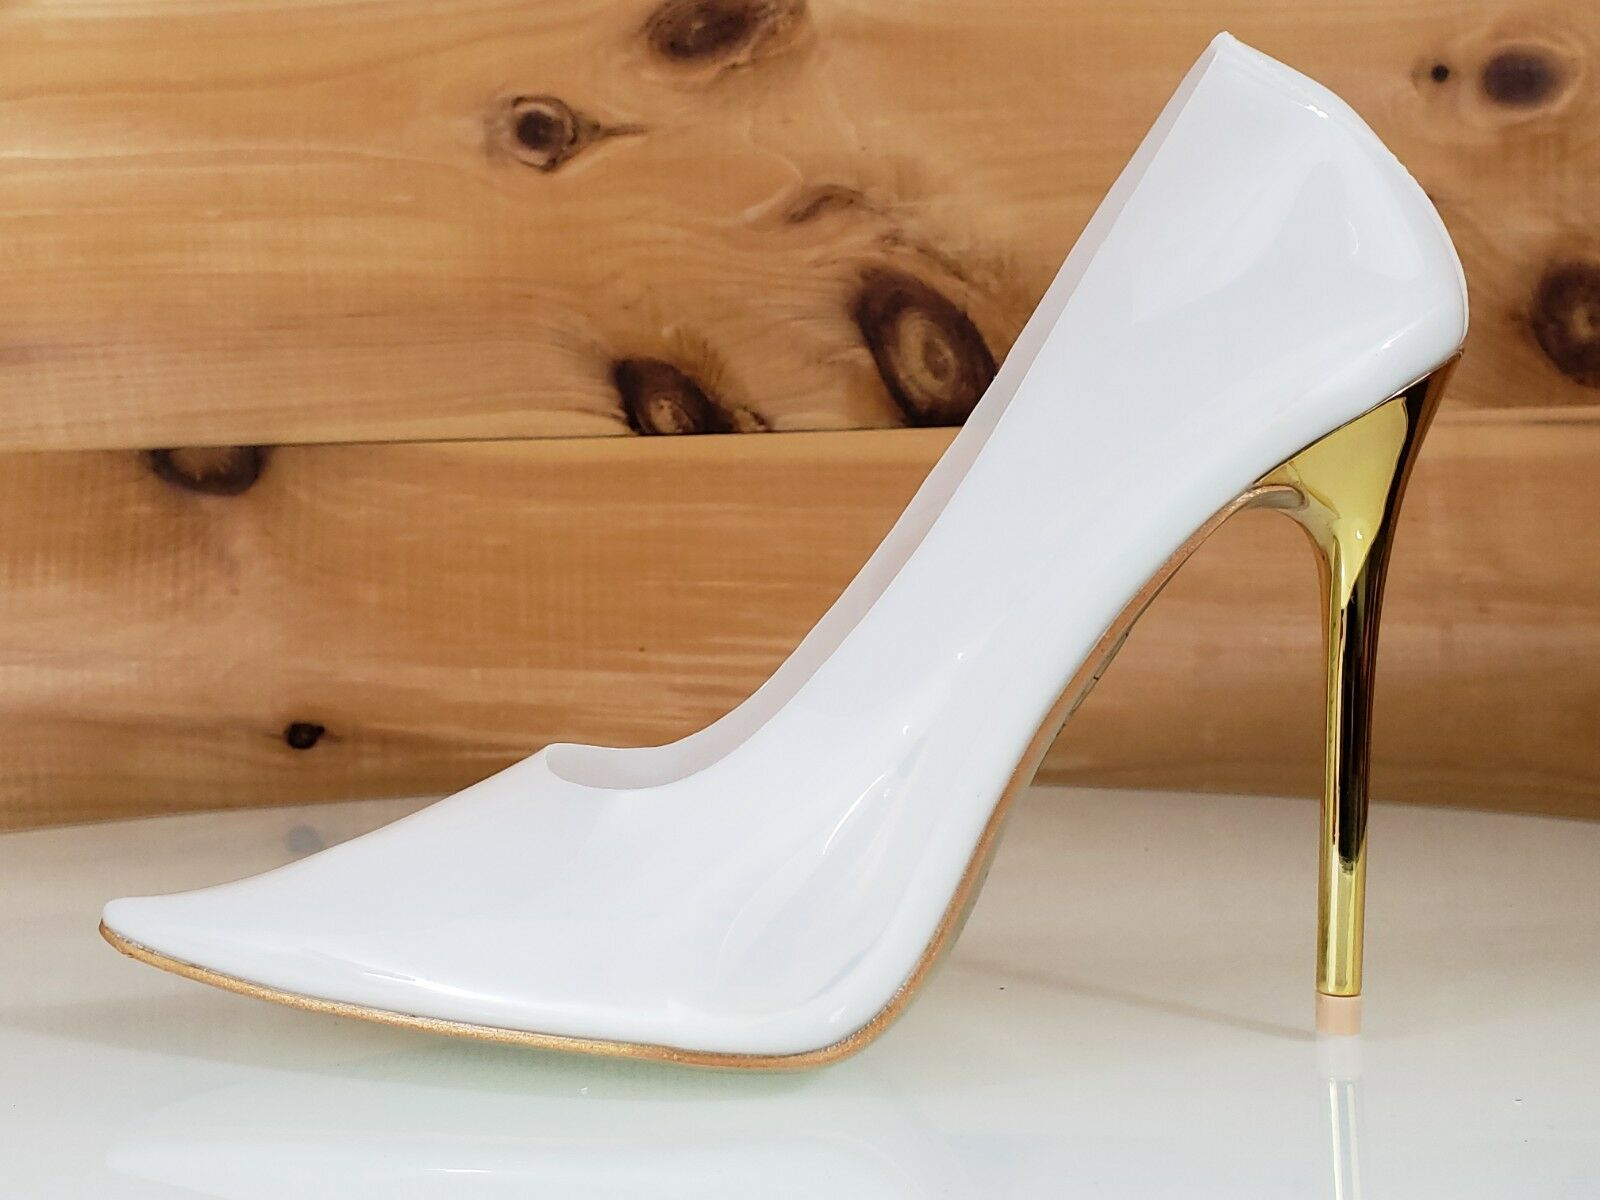 Mac J Transparent White Pointy Toe Pump gold 4.5 High Heel   Sole shoes 7-11